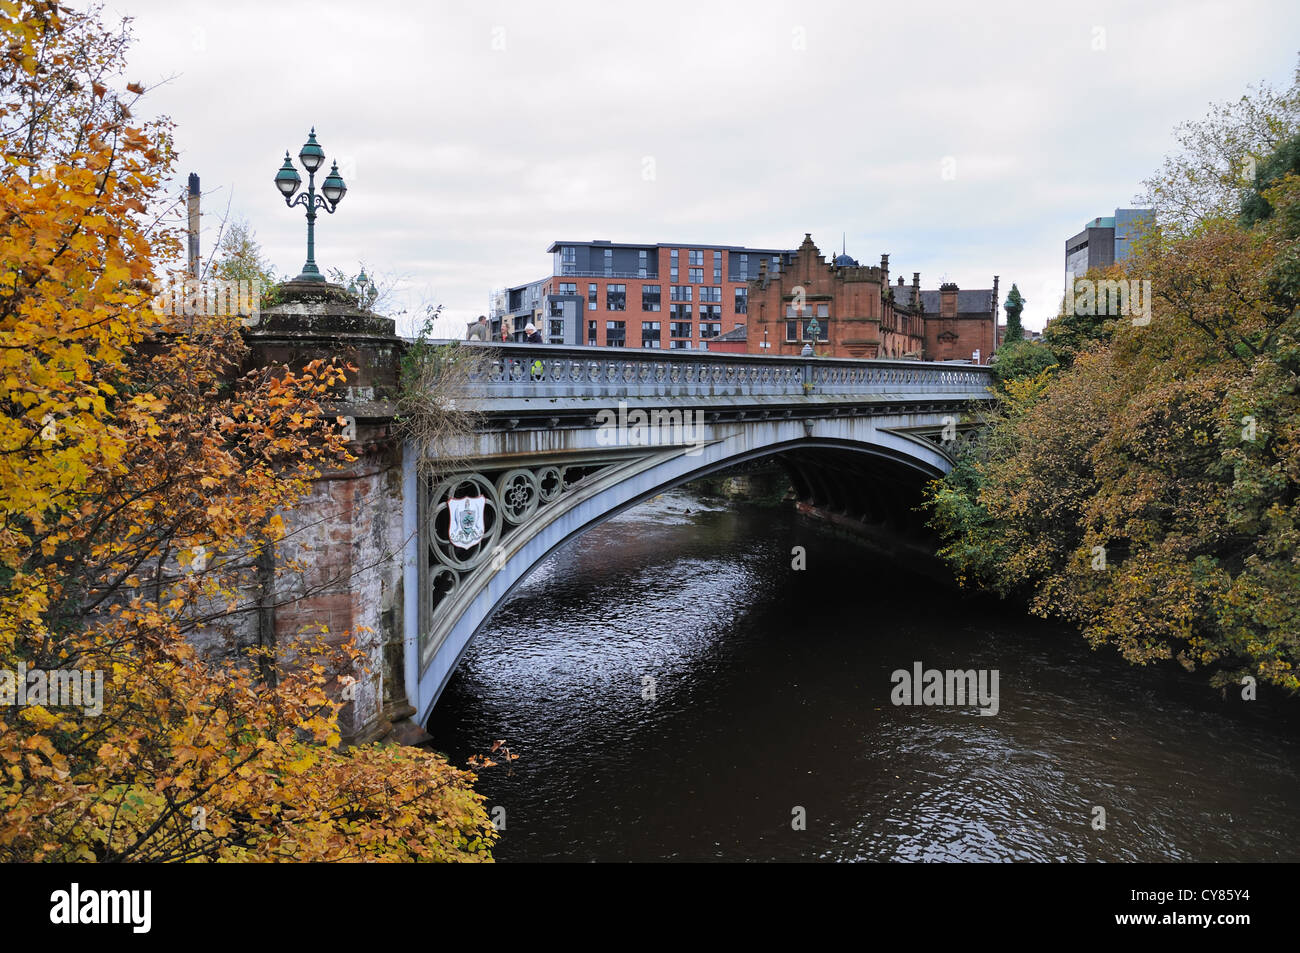 The 'new' Partick Bridge which crosses the river Kelvin in the west end of Glasgow. - Stock Image